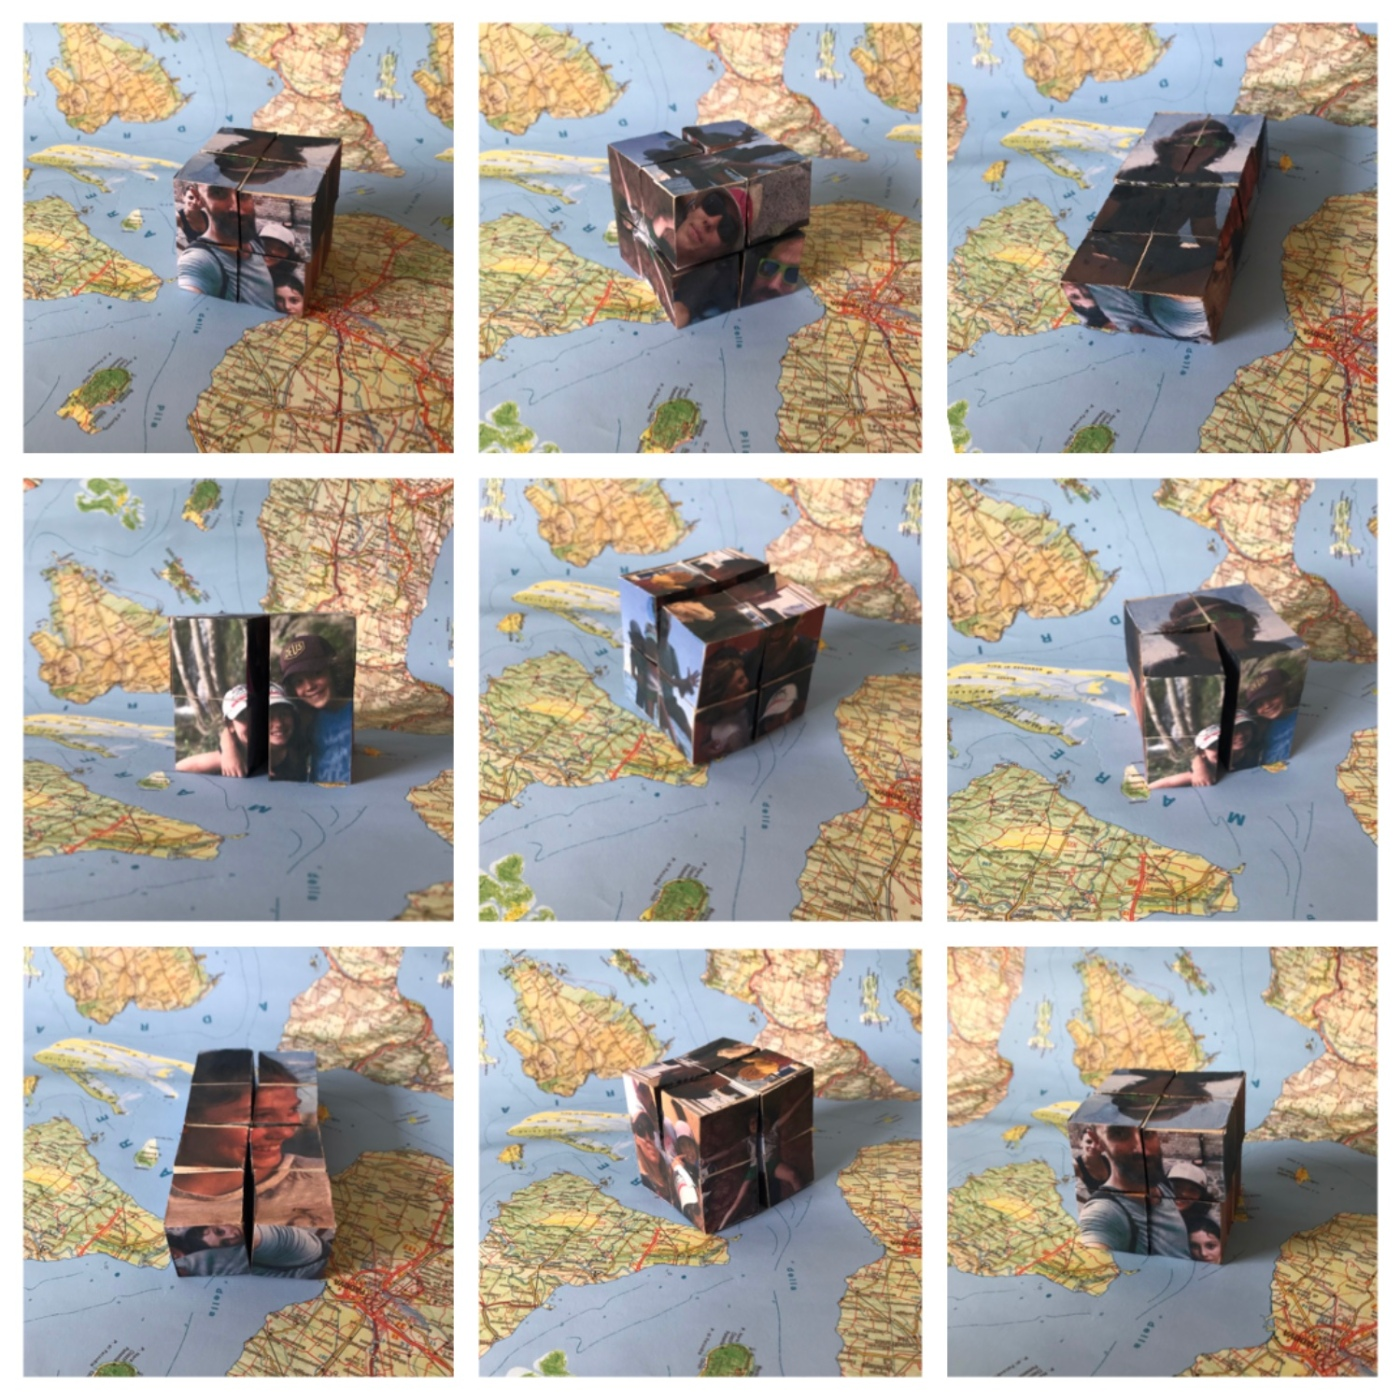 Cube magique photographique -bricolage enfant - DIY - craft for kids - album photo - origami - collage - image à la une